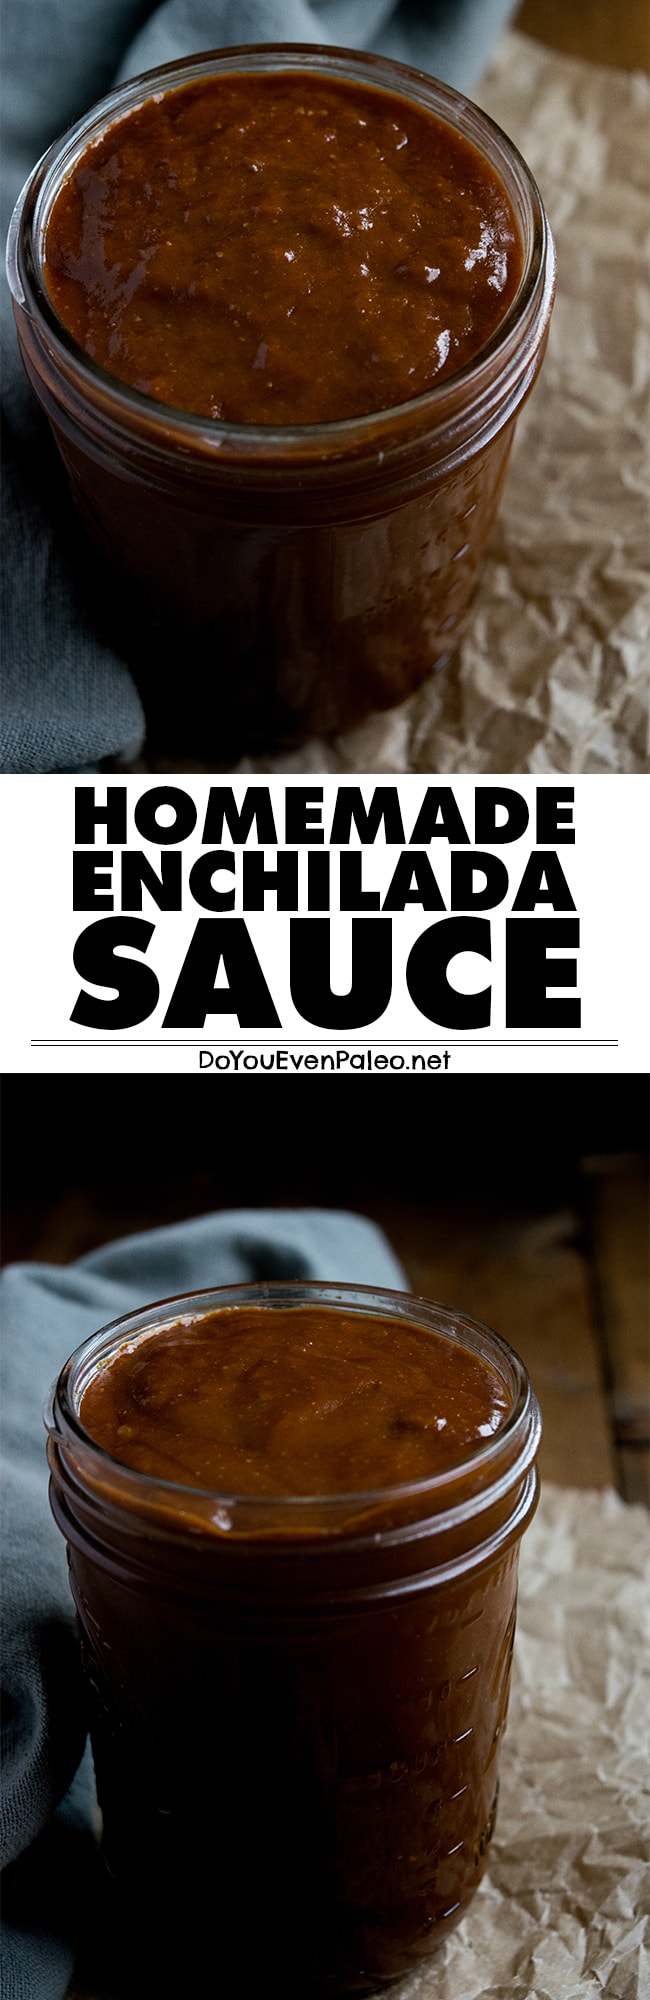 Make your own homemade red enchilada sauce! It only takes about 10 minutes, and you probably have the ingredients in your pantry already. | DoYouEvenPaleo.net